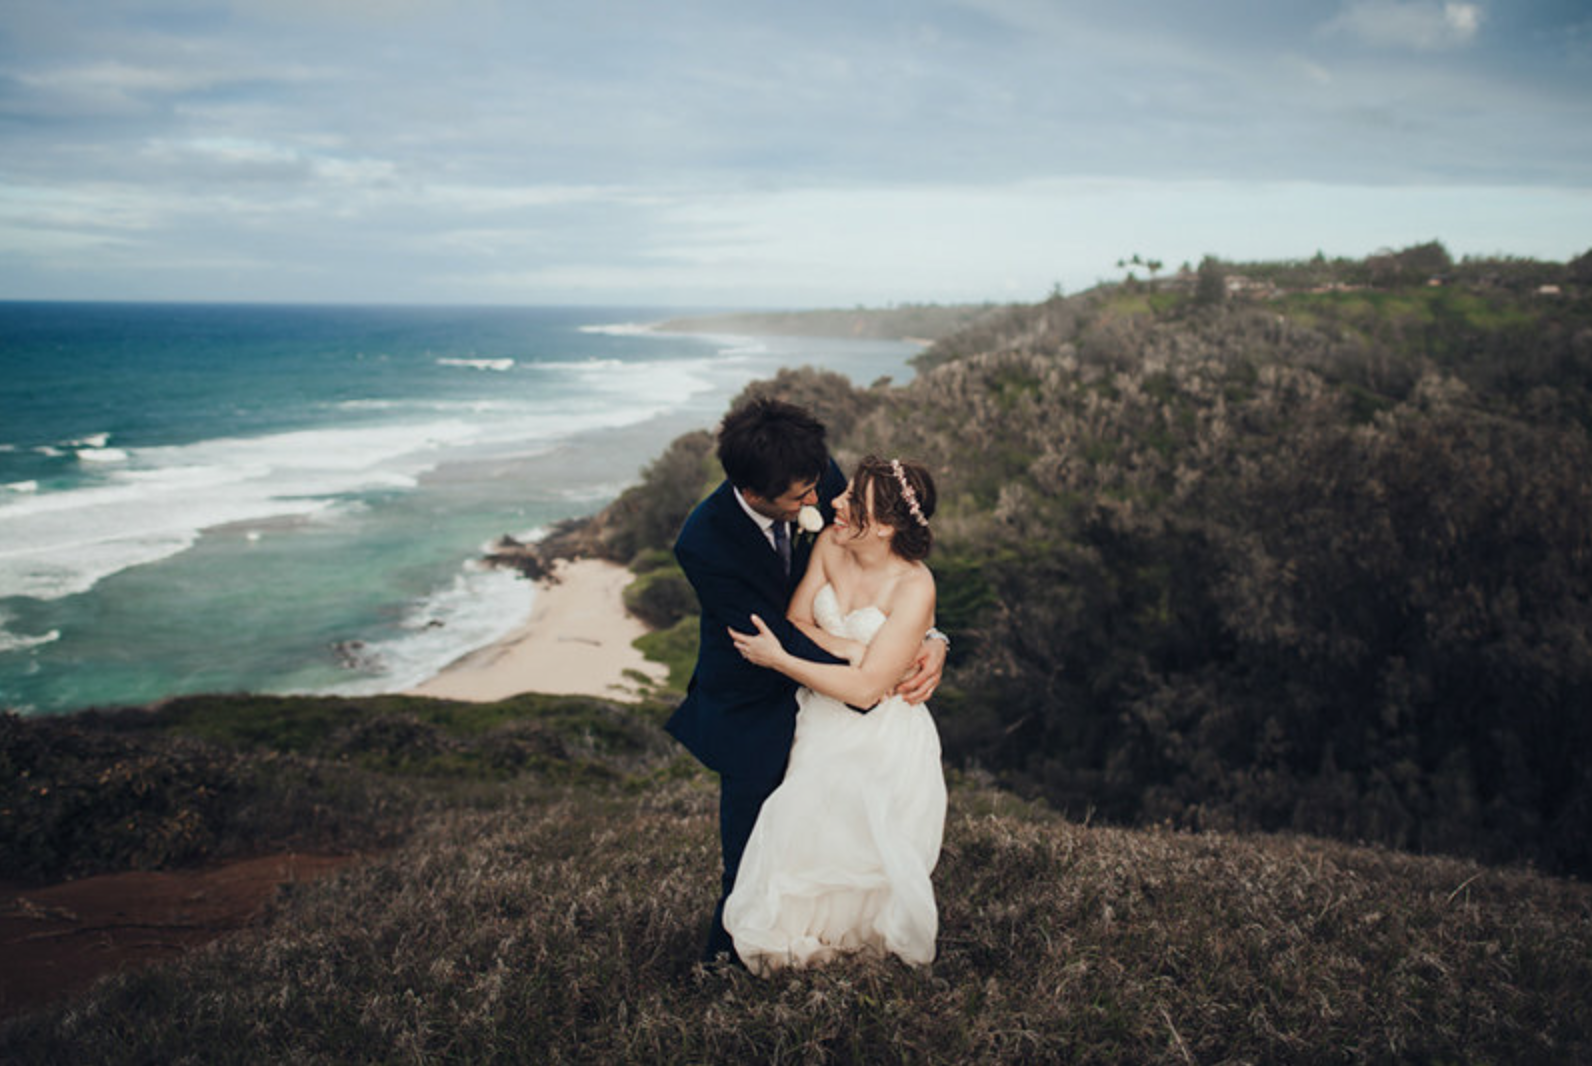 Elope at One of Our Signature Locations in Kauai, Hawaii